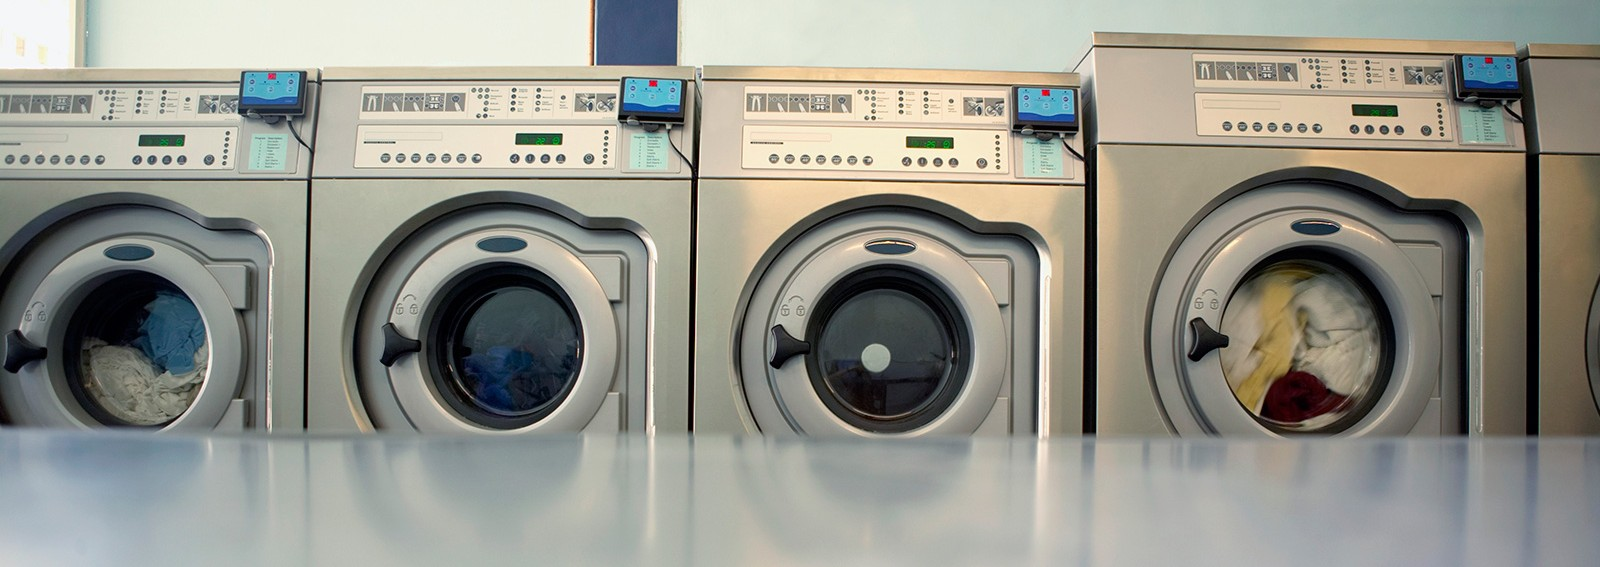 Why you should wash your new clothes before wearing them